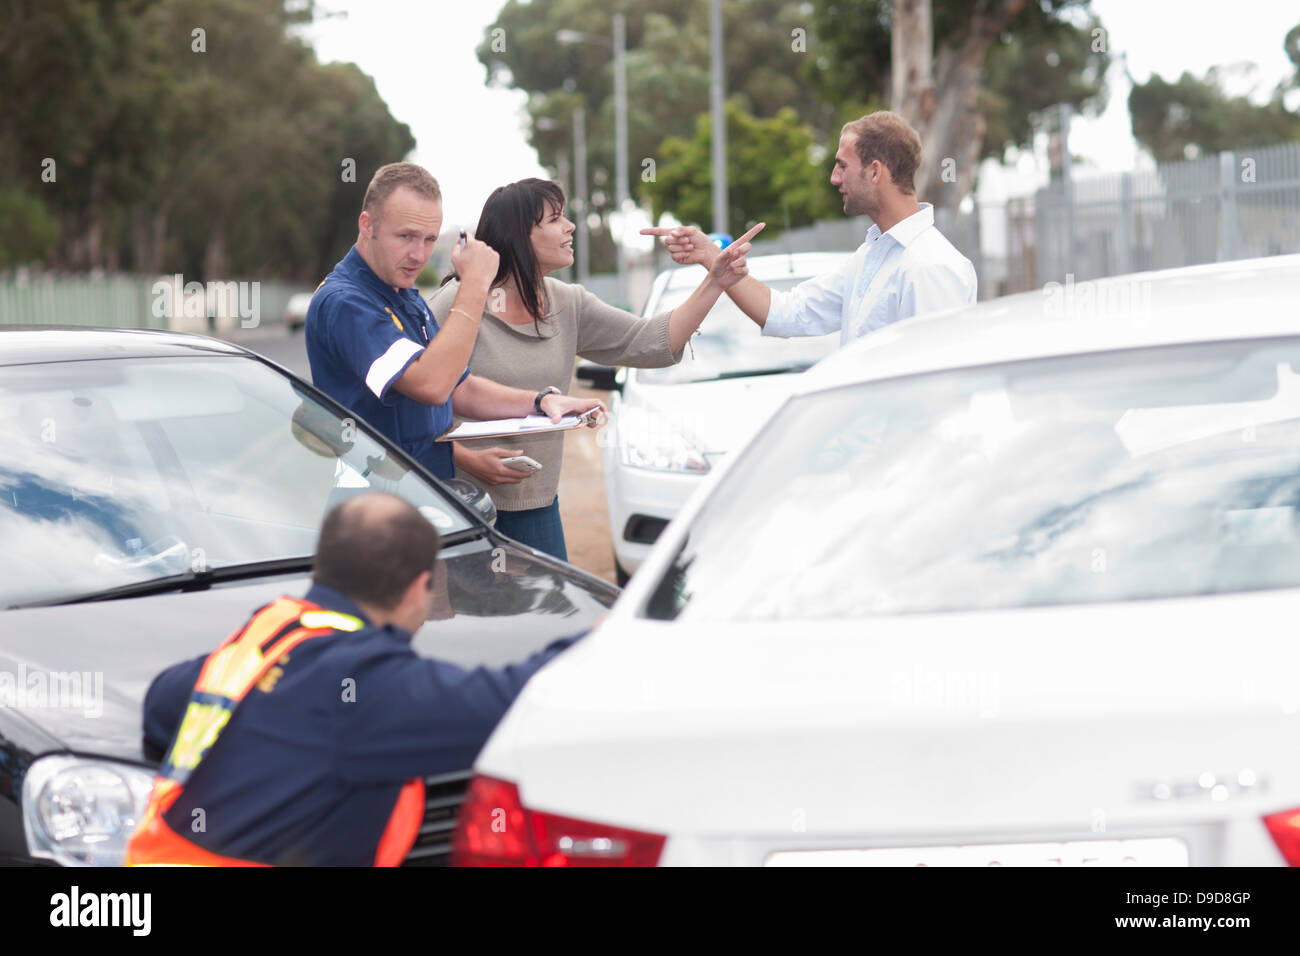 Drivers accusing each other at scene of car accident - Stock Image